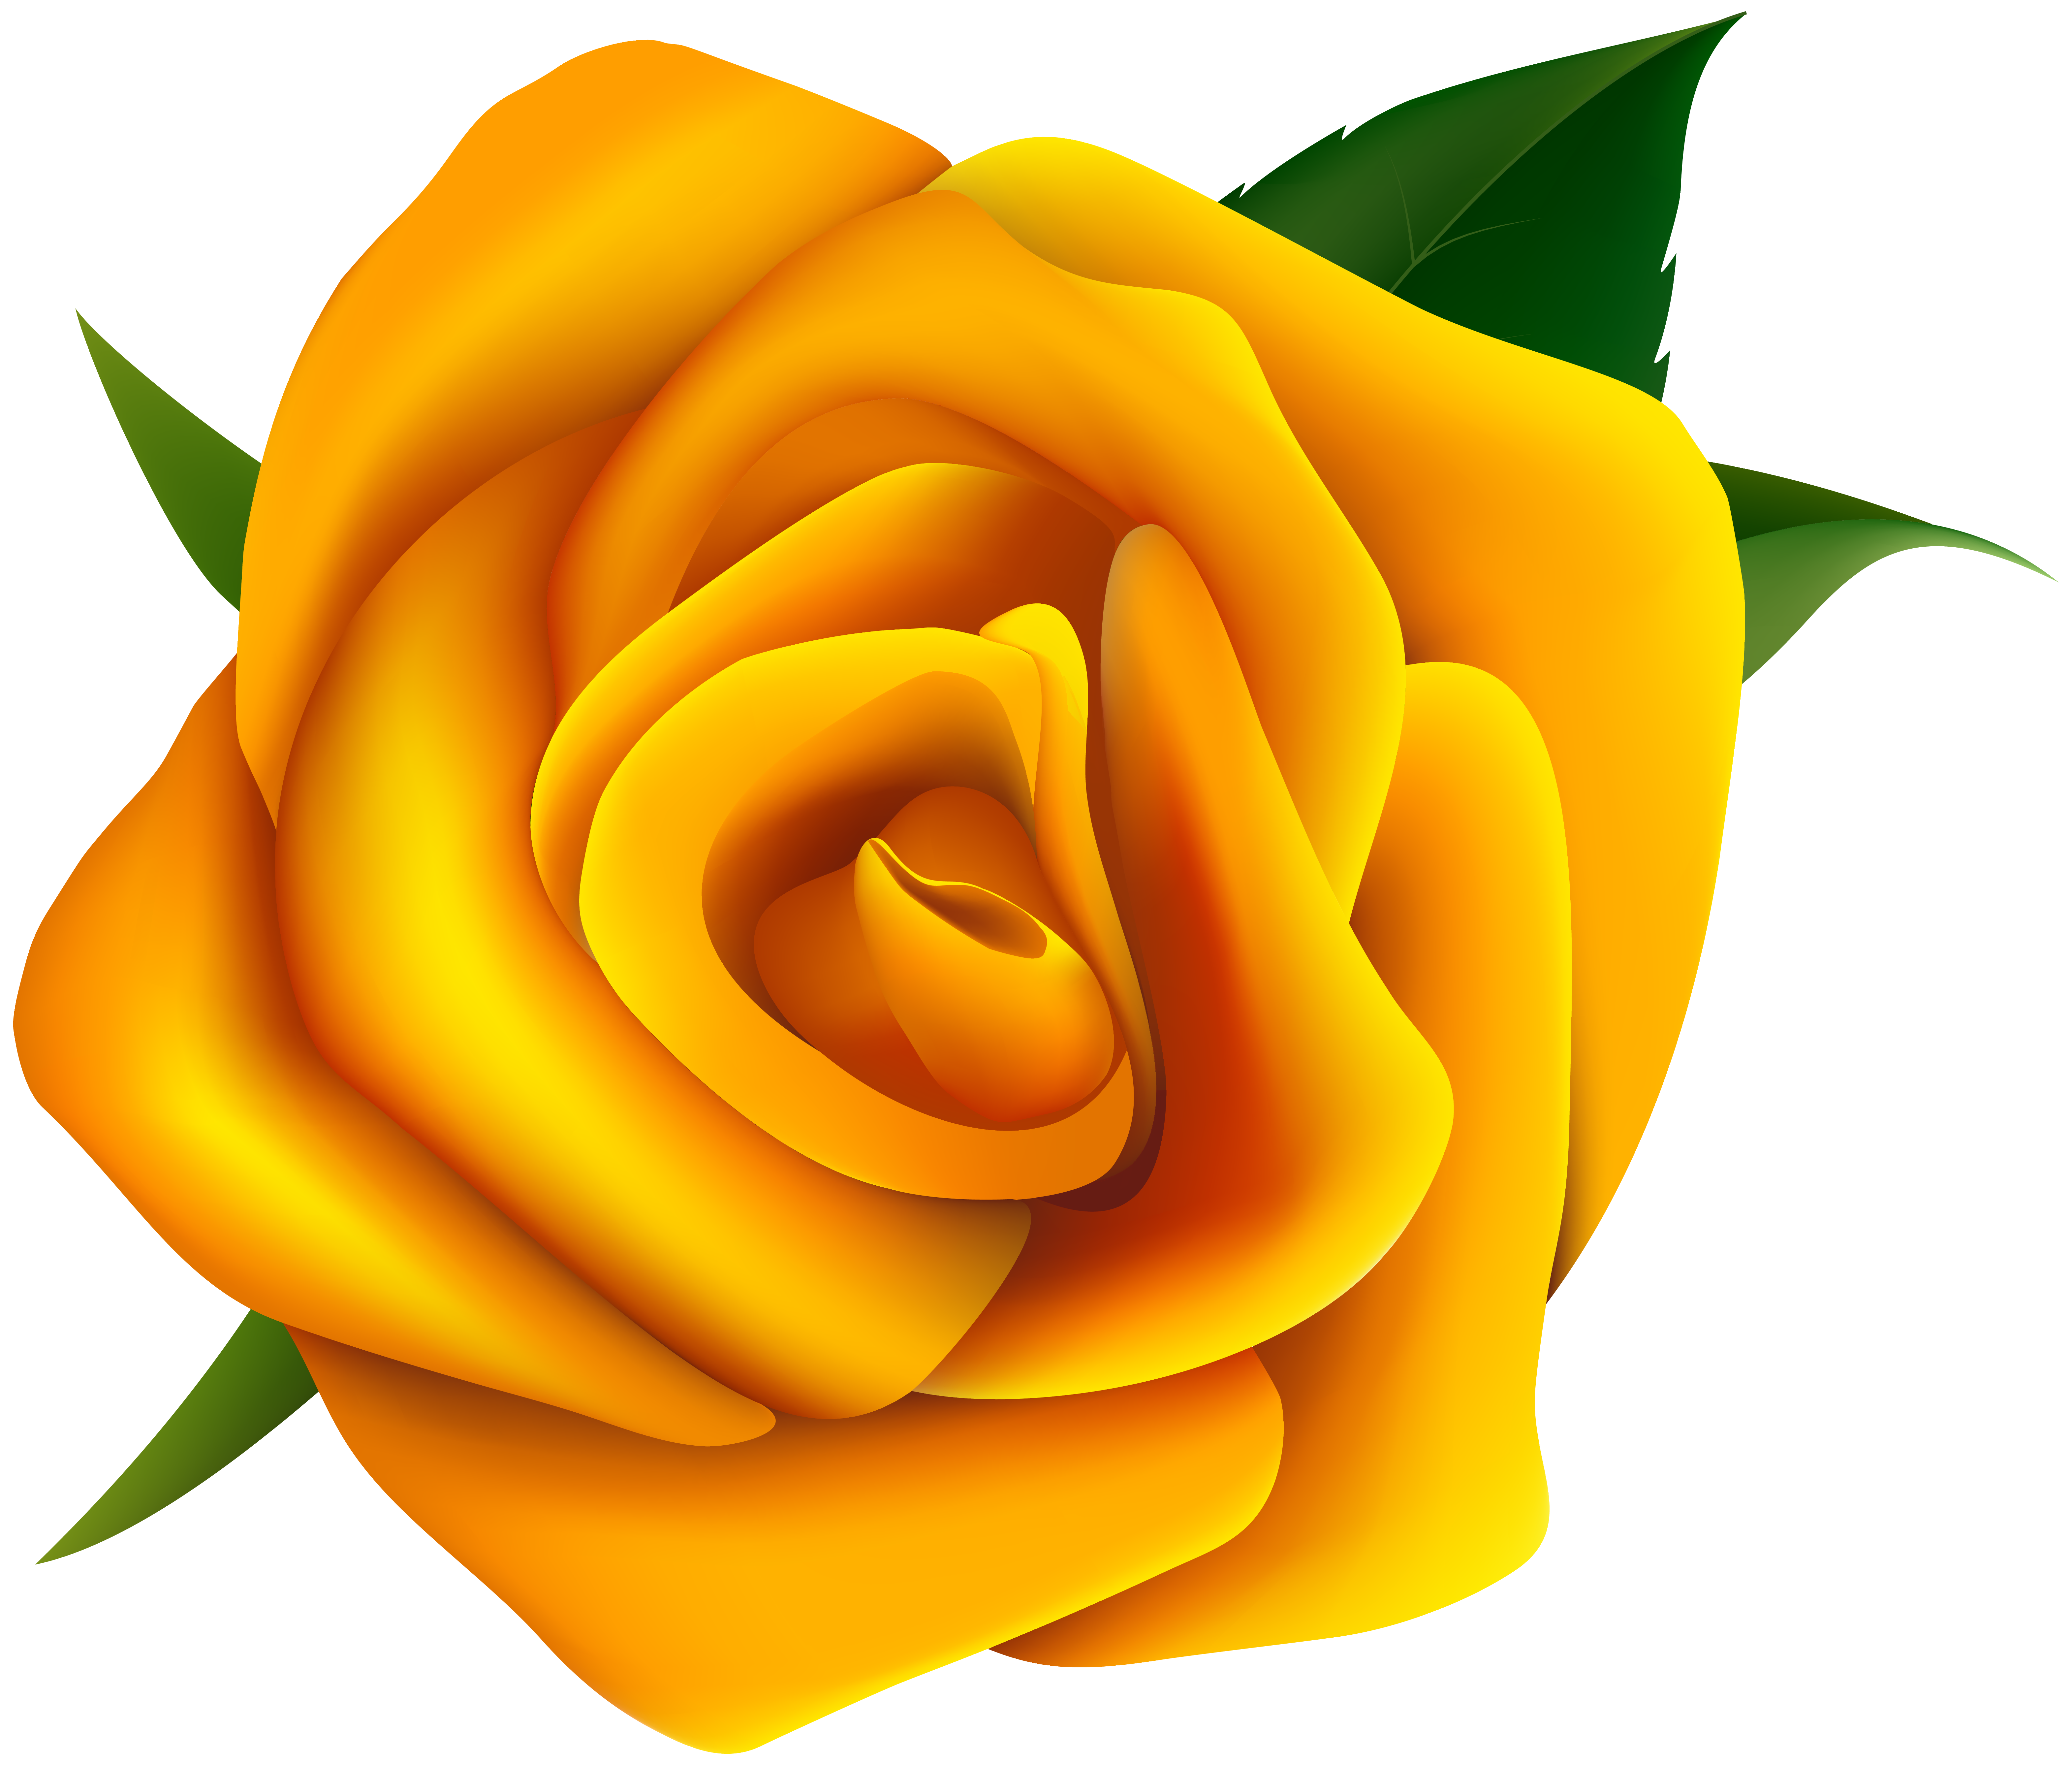 Yellow rose flower clipart.